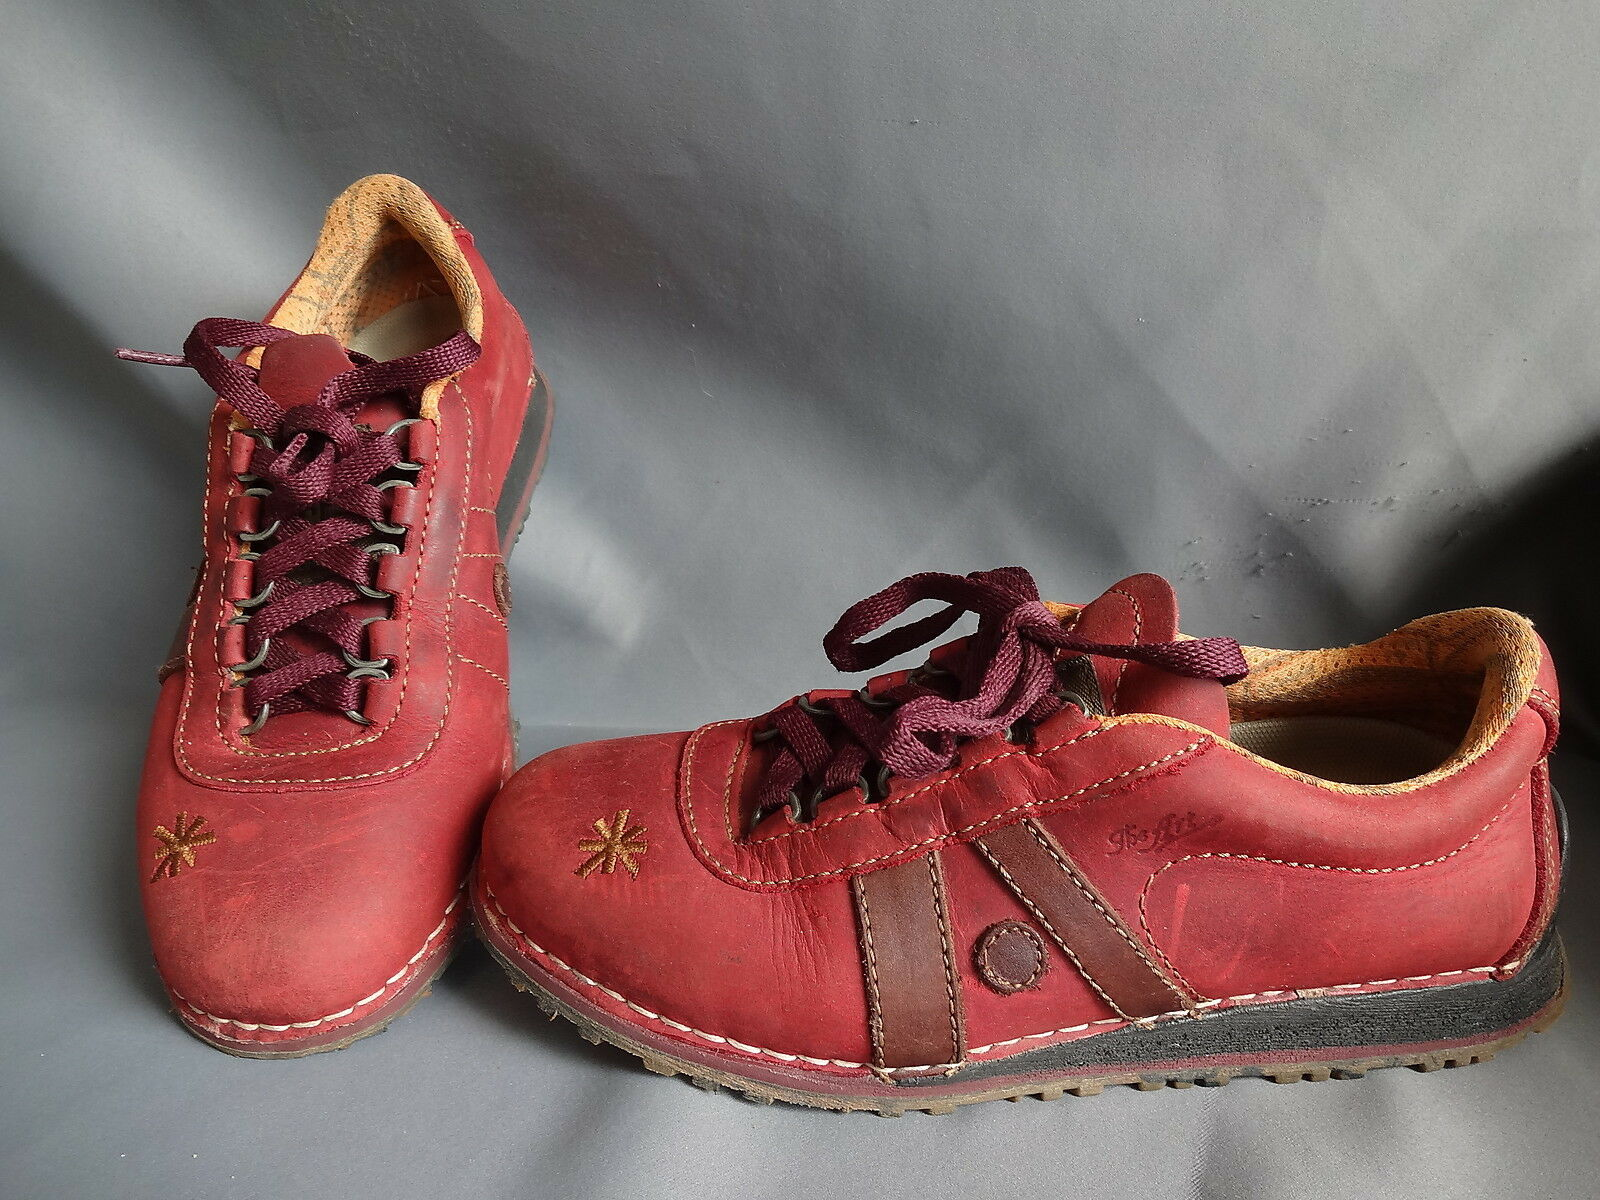 ART COMPANY CHAUSSURE BASKET DERBY FEMME FILLE FILLE FILLE CUIR ROUGE pt 36 ROT SNEAKERS 7daed6